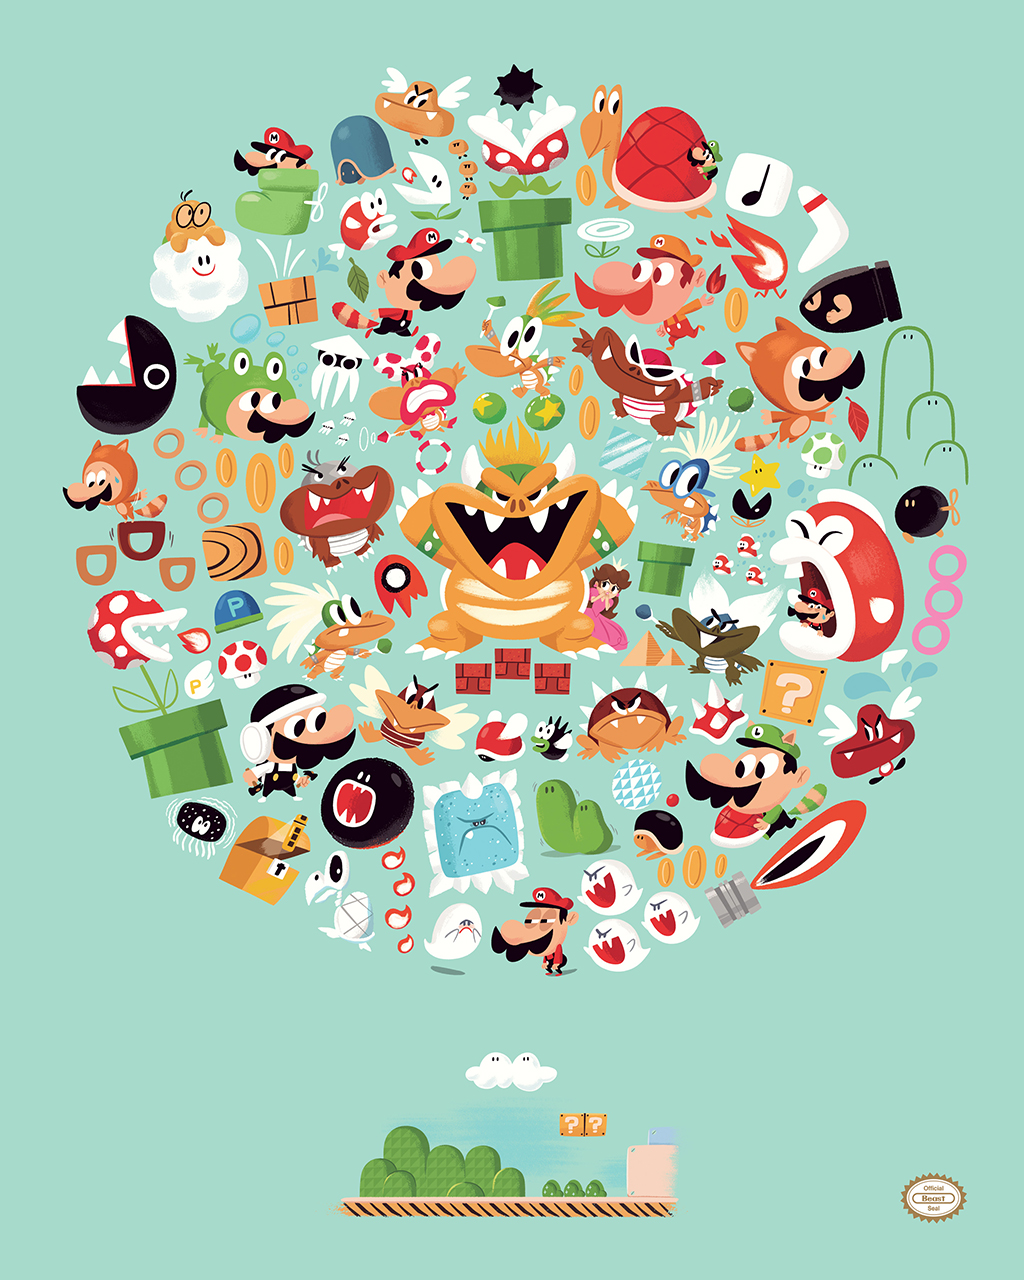 Super Mario Bros 3 By Thebeastisback On Deviantart